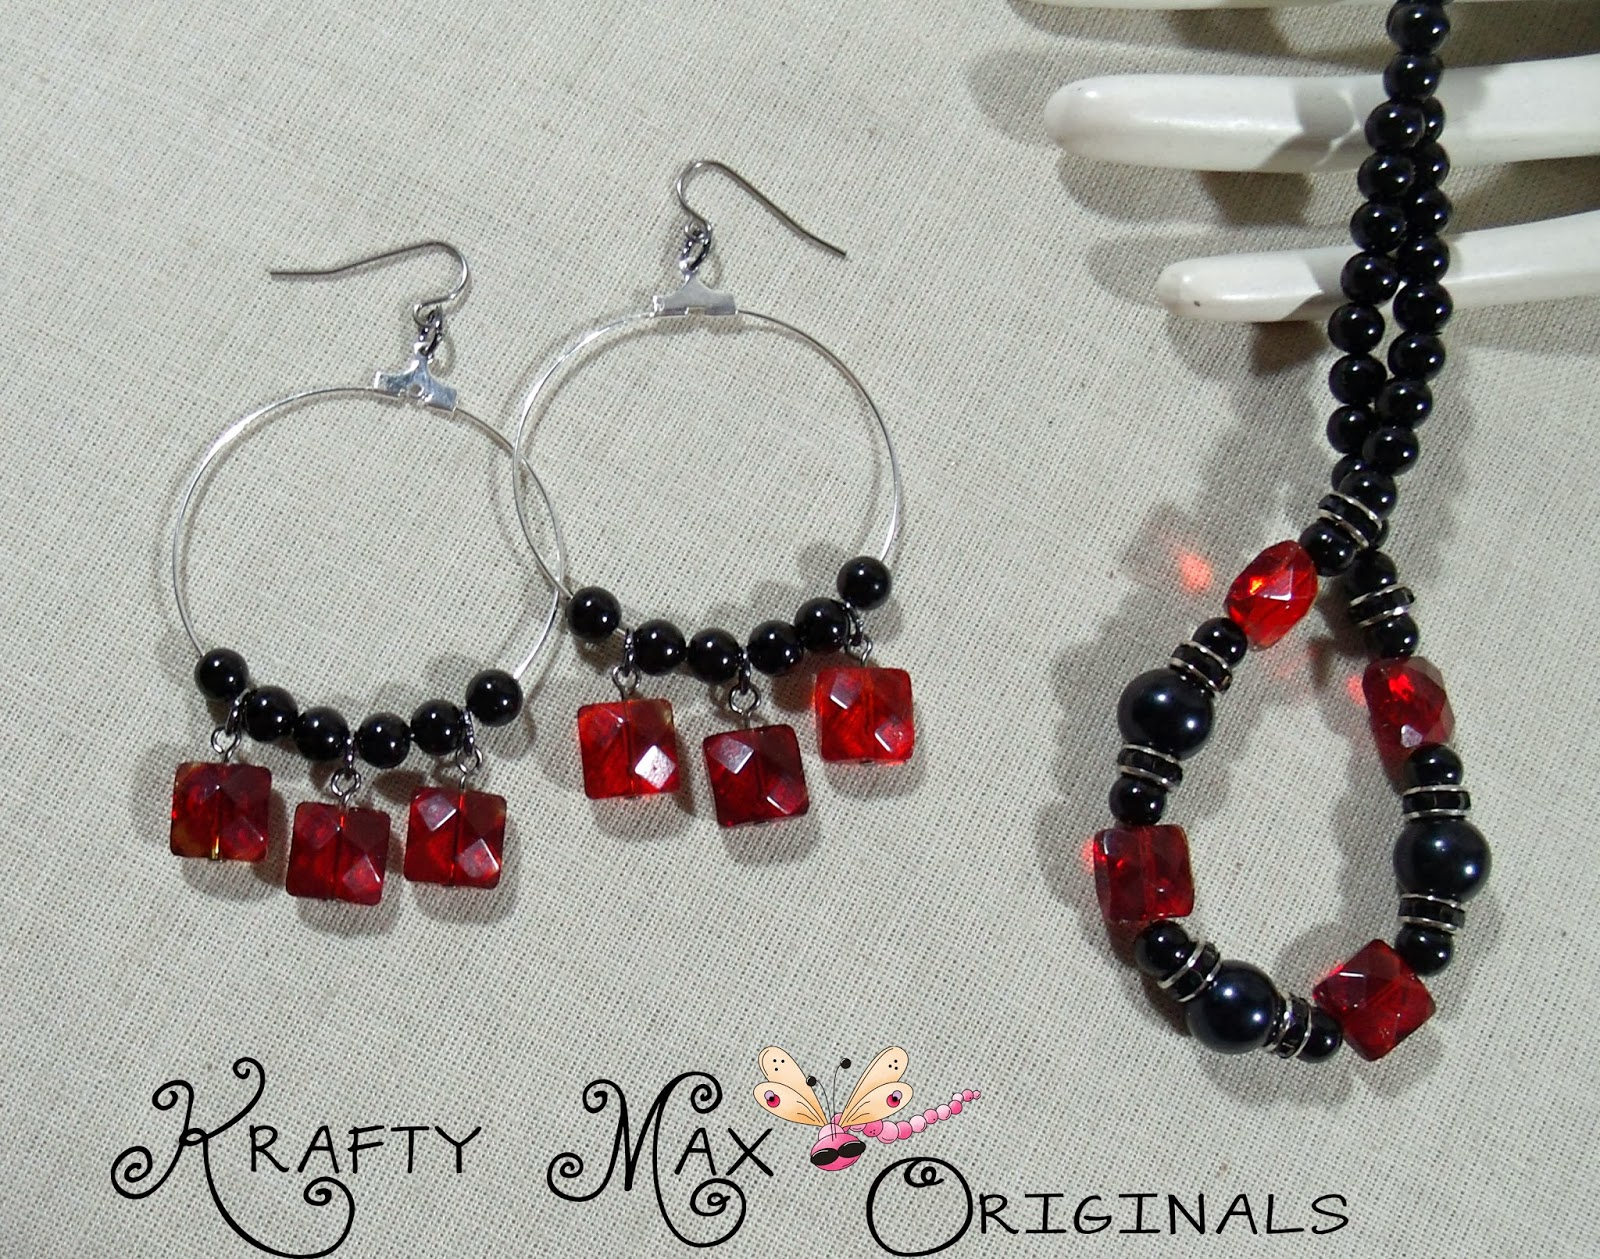 http://www.artfire.com/ext/shop/product_view/KraftyMax/8261951/red_and_black_beauty_prima_beads_blog_team_necklace_set/handmade/jewelry/sets/glass